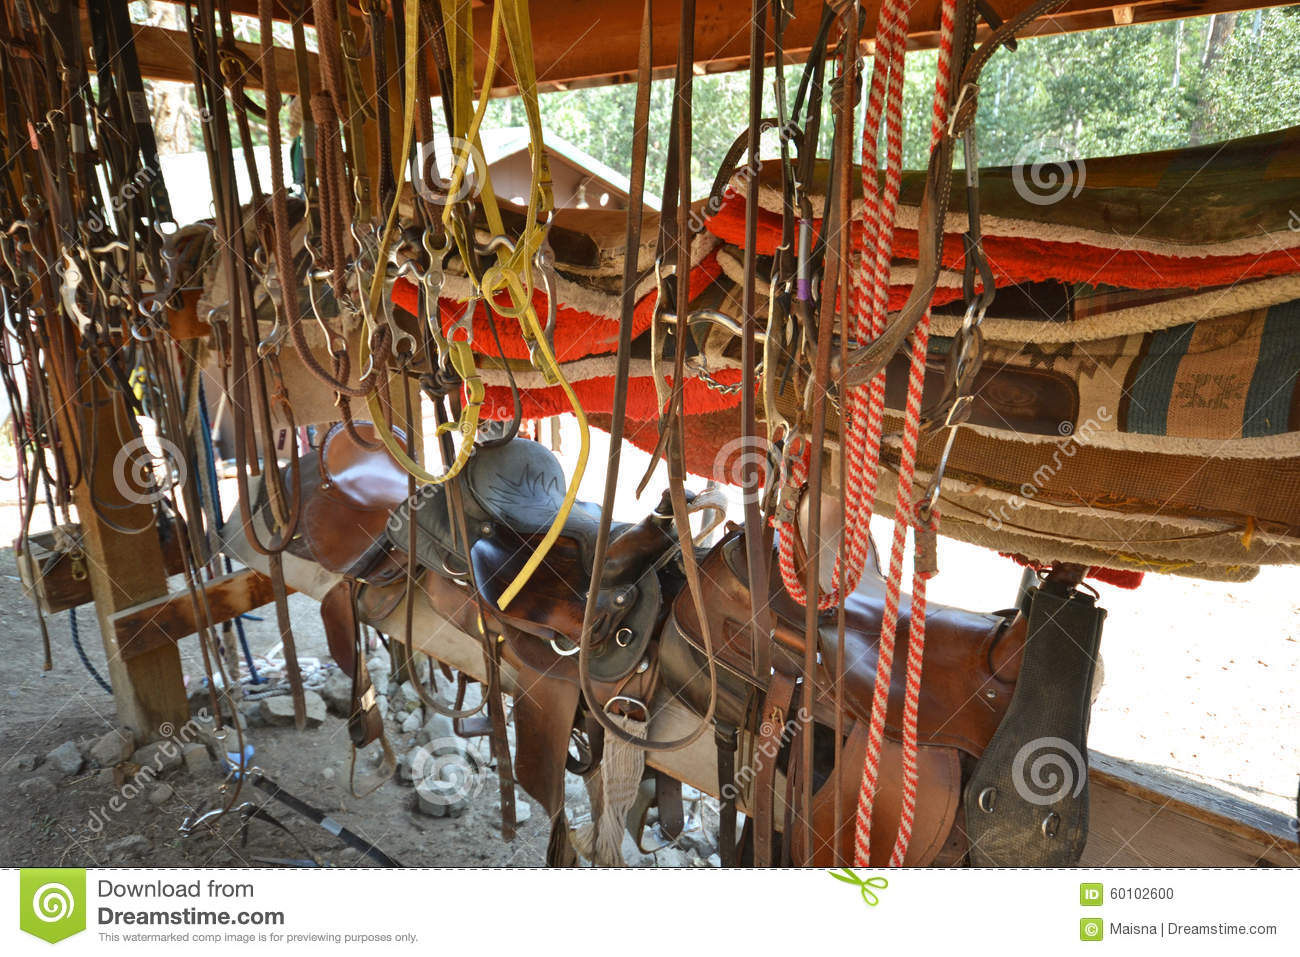 Horse Riding Equipment Stock Photo Image Of Outside 60102600